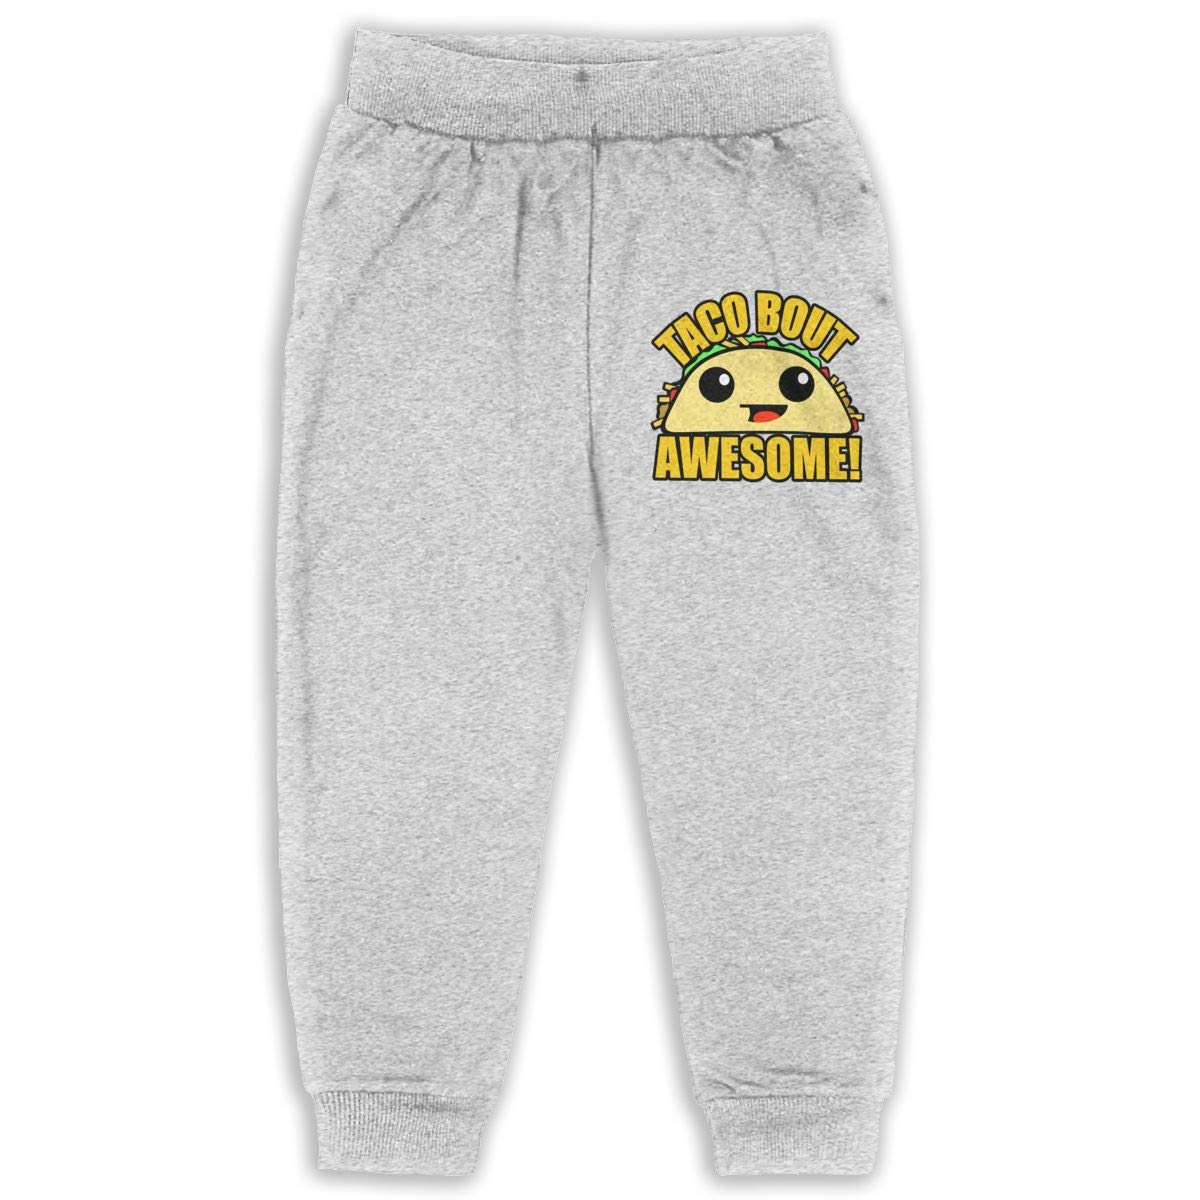 Cqelng Oii Taco Bout Awesome 2-6T Boys Active Jogger Soft Pants